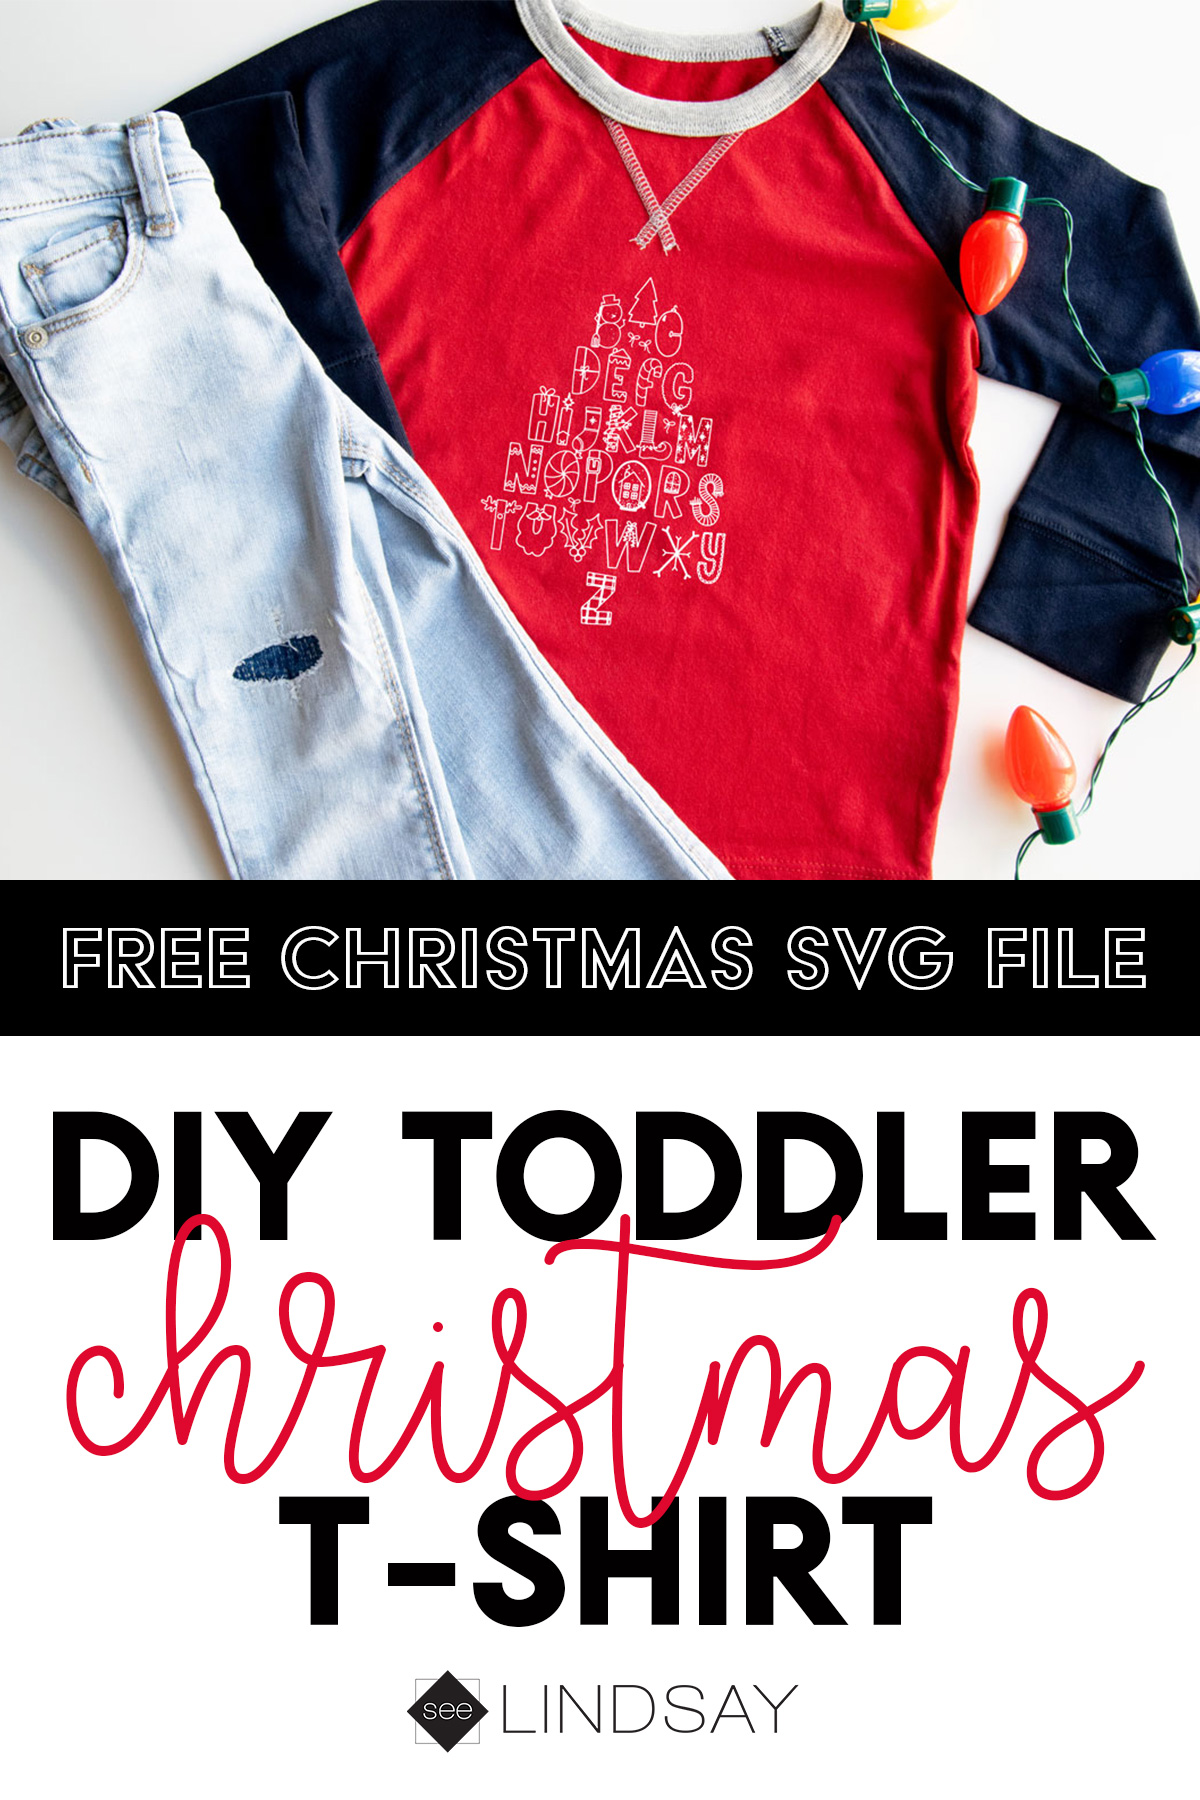 free Christmas svg for kids